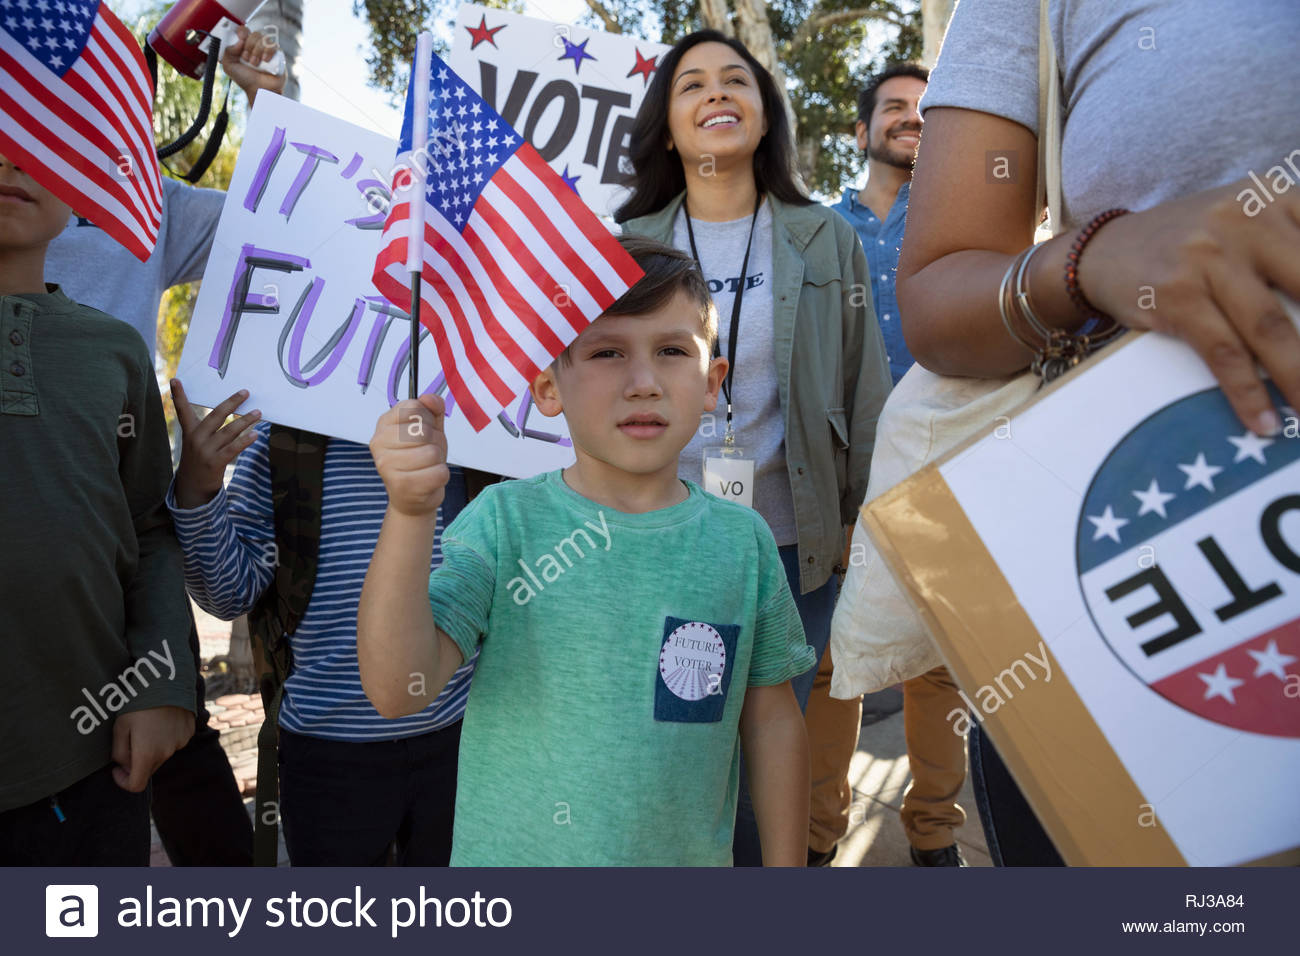 Latinx boy waving American flag, canvassing voters - Stock Image